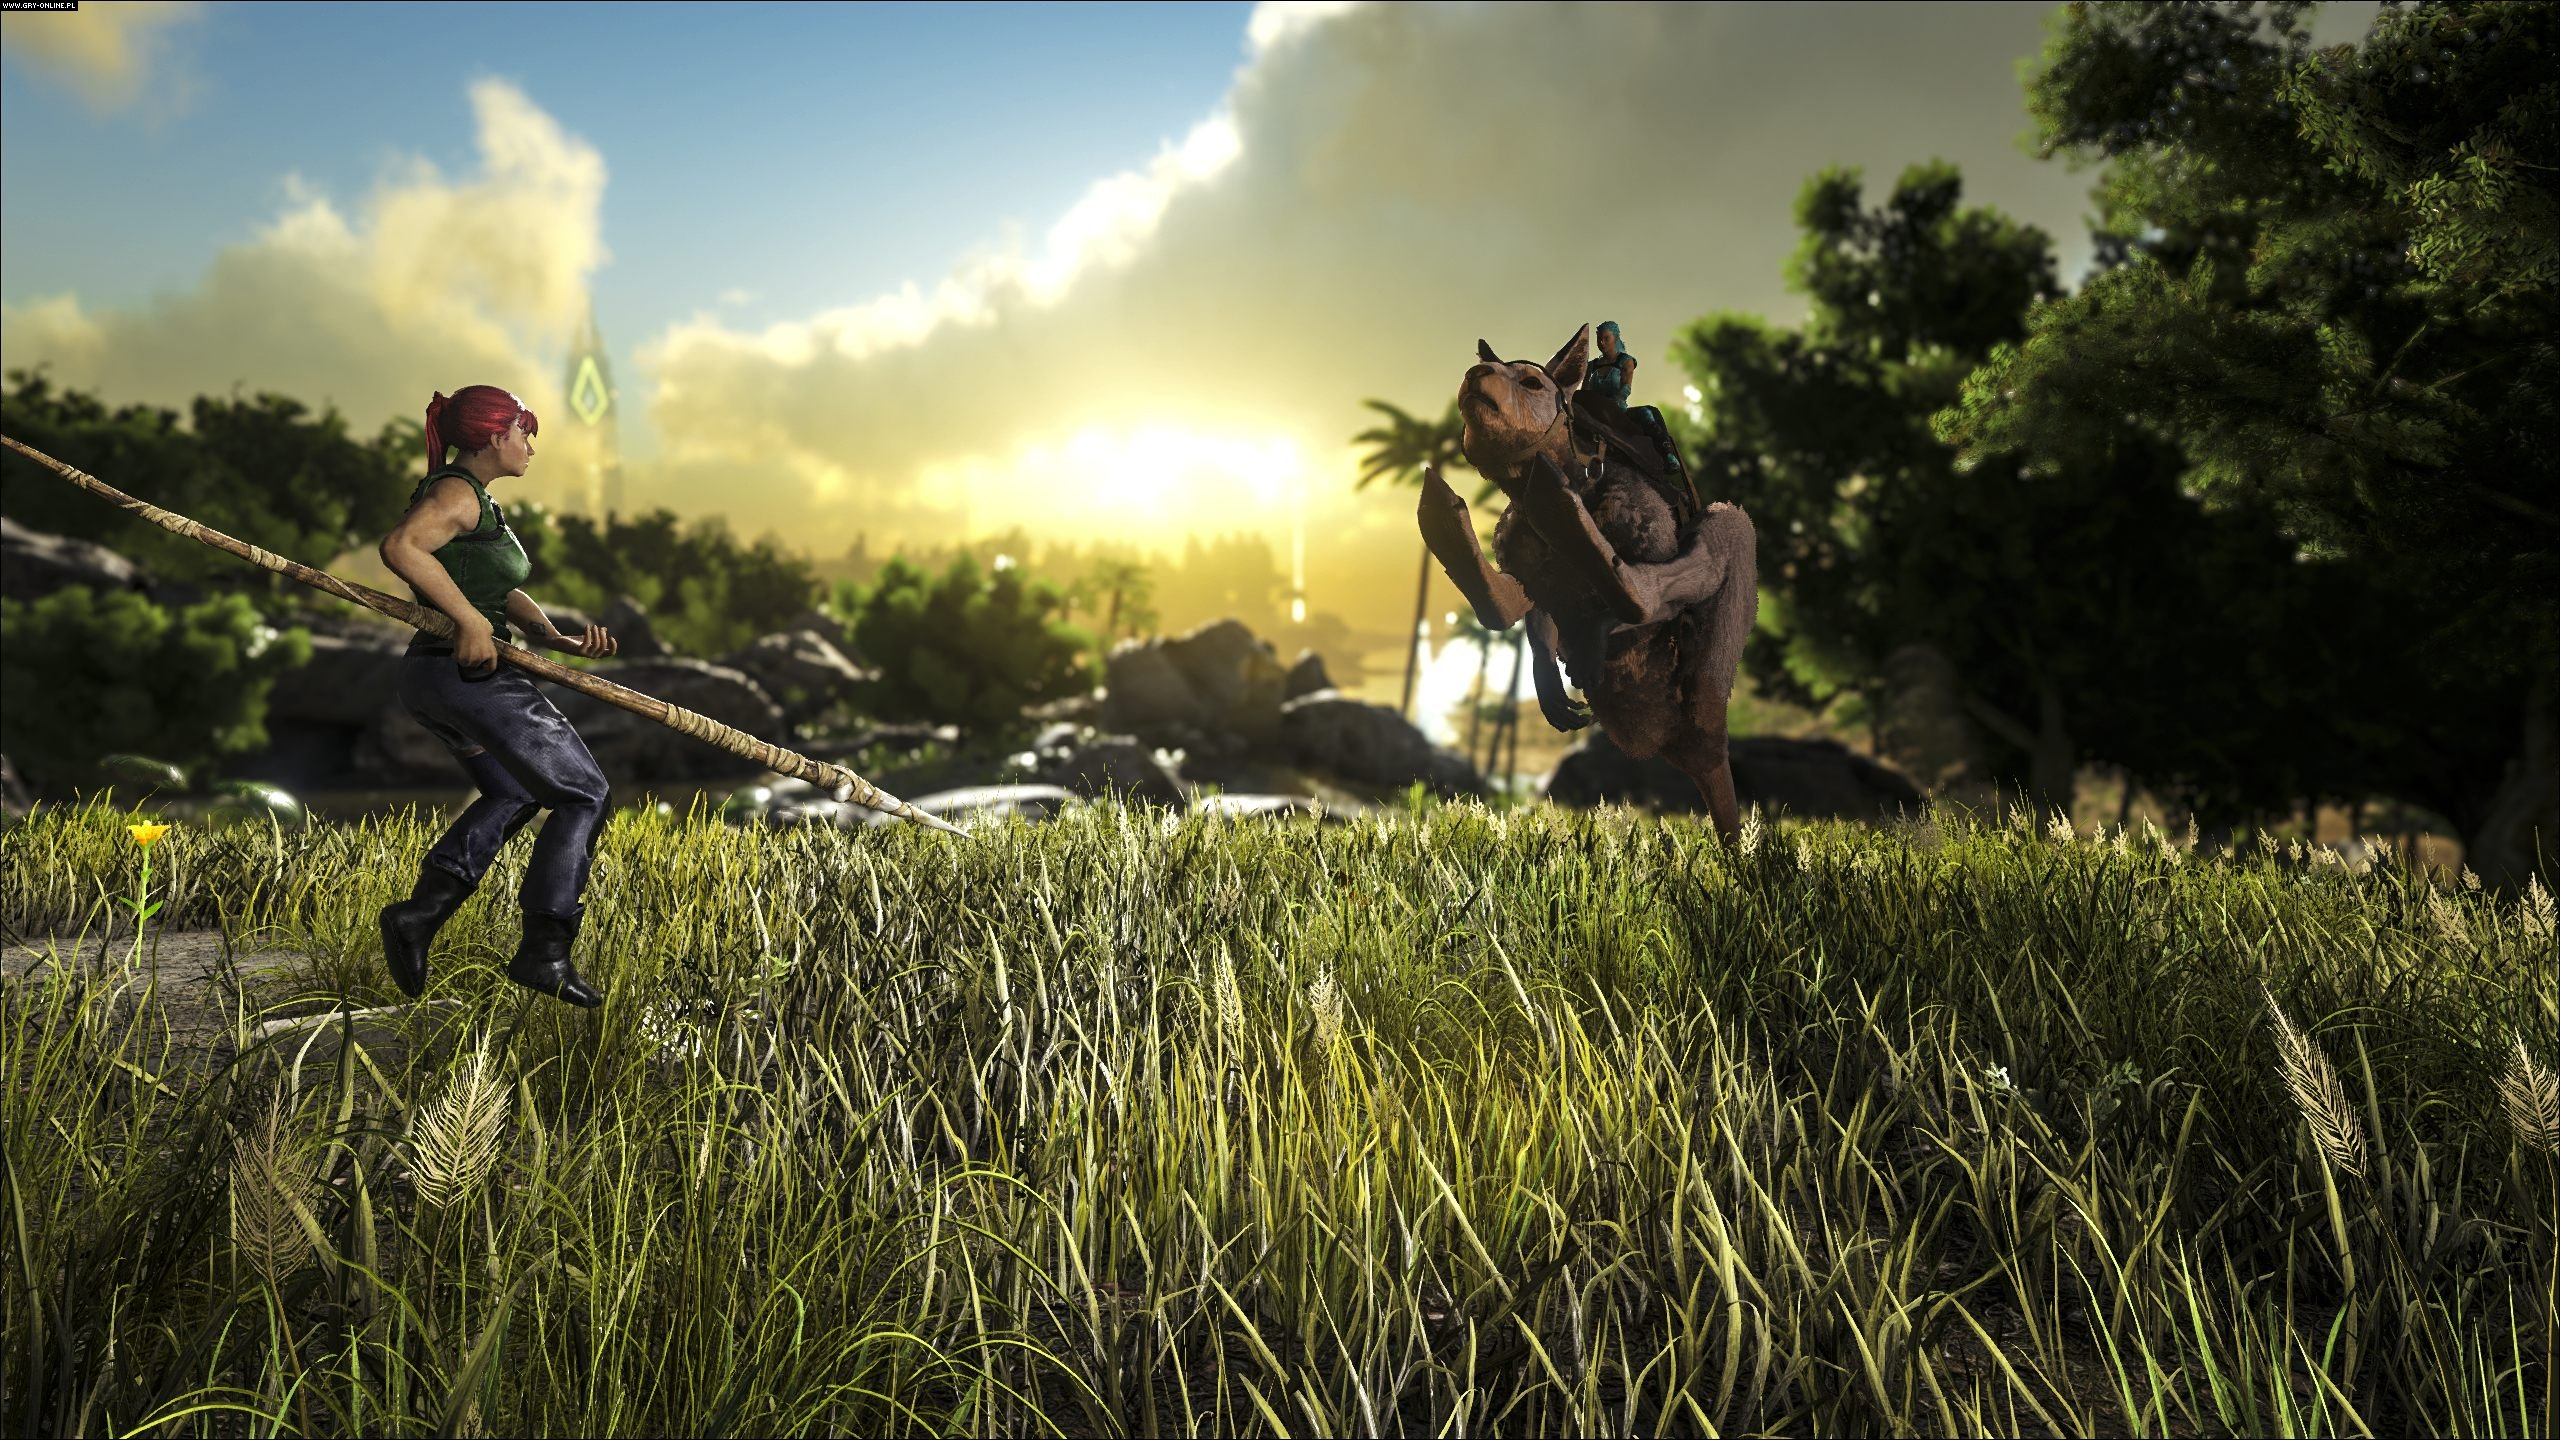 ARK: Survival Evolved PC, PS4, XONE Gry Screen 18/139, Studio Wildcard